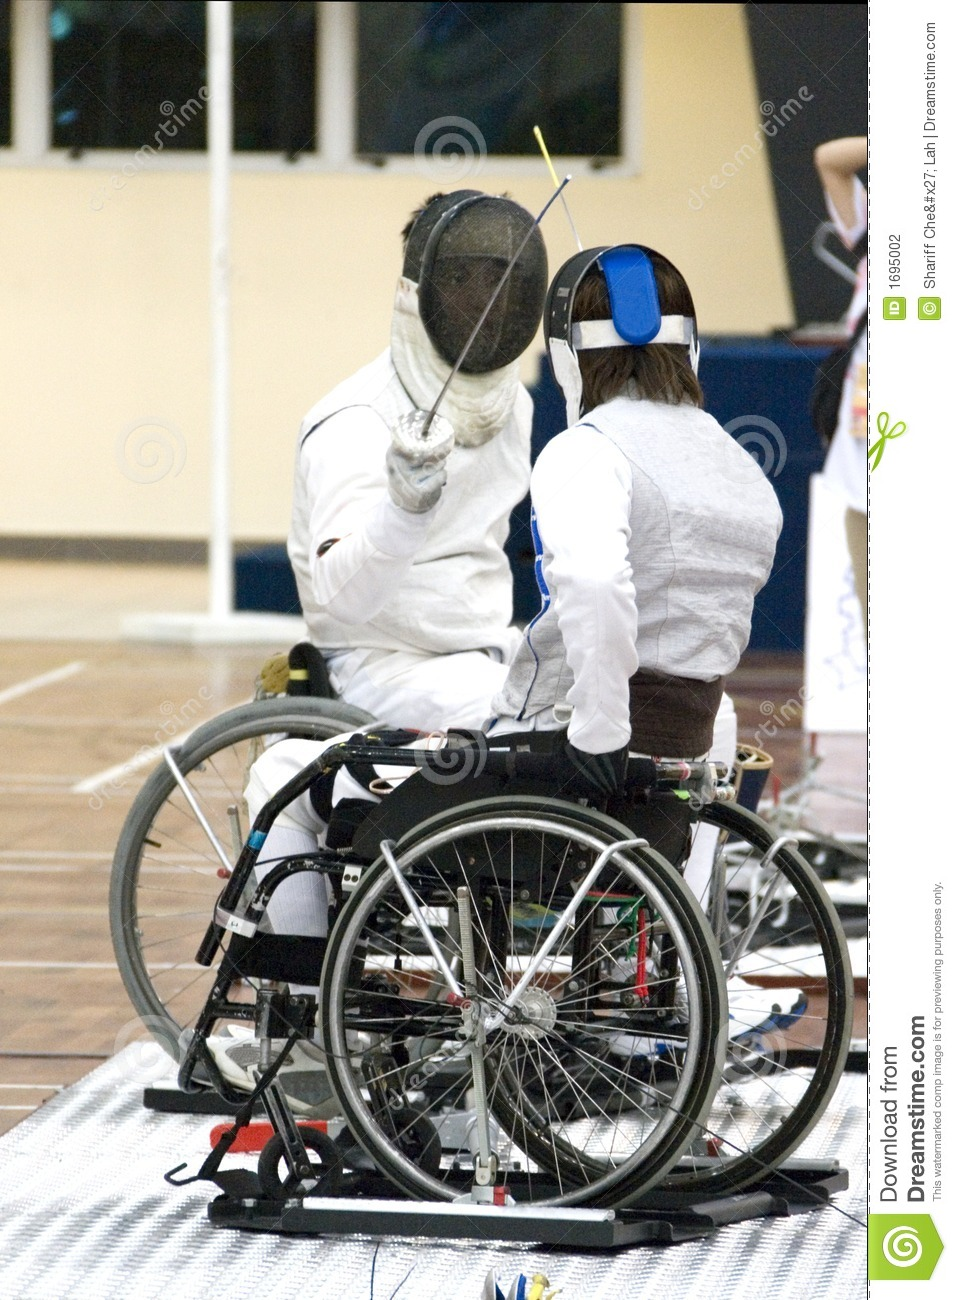 Wheel Chair Fencing for Disabled Persons